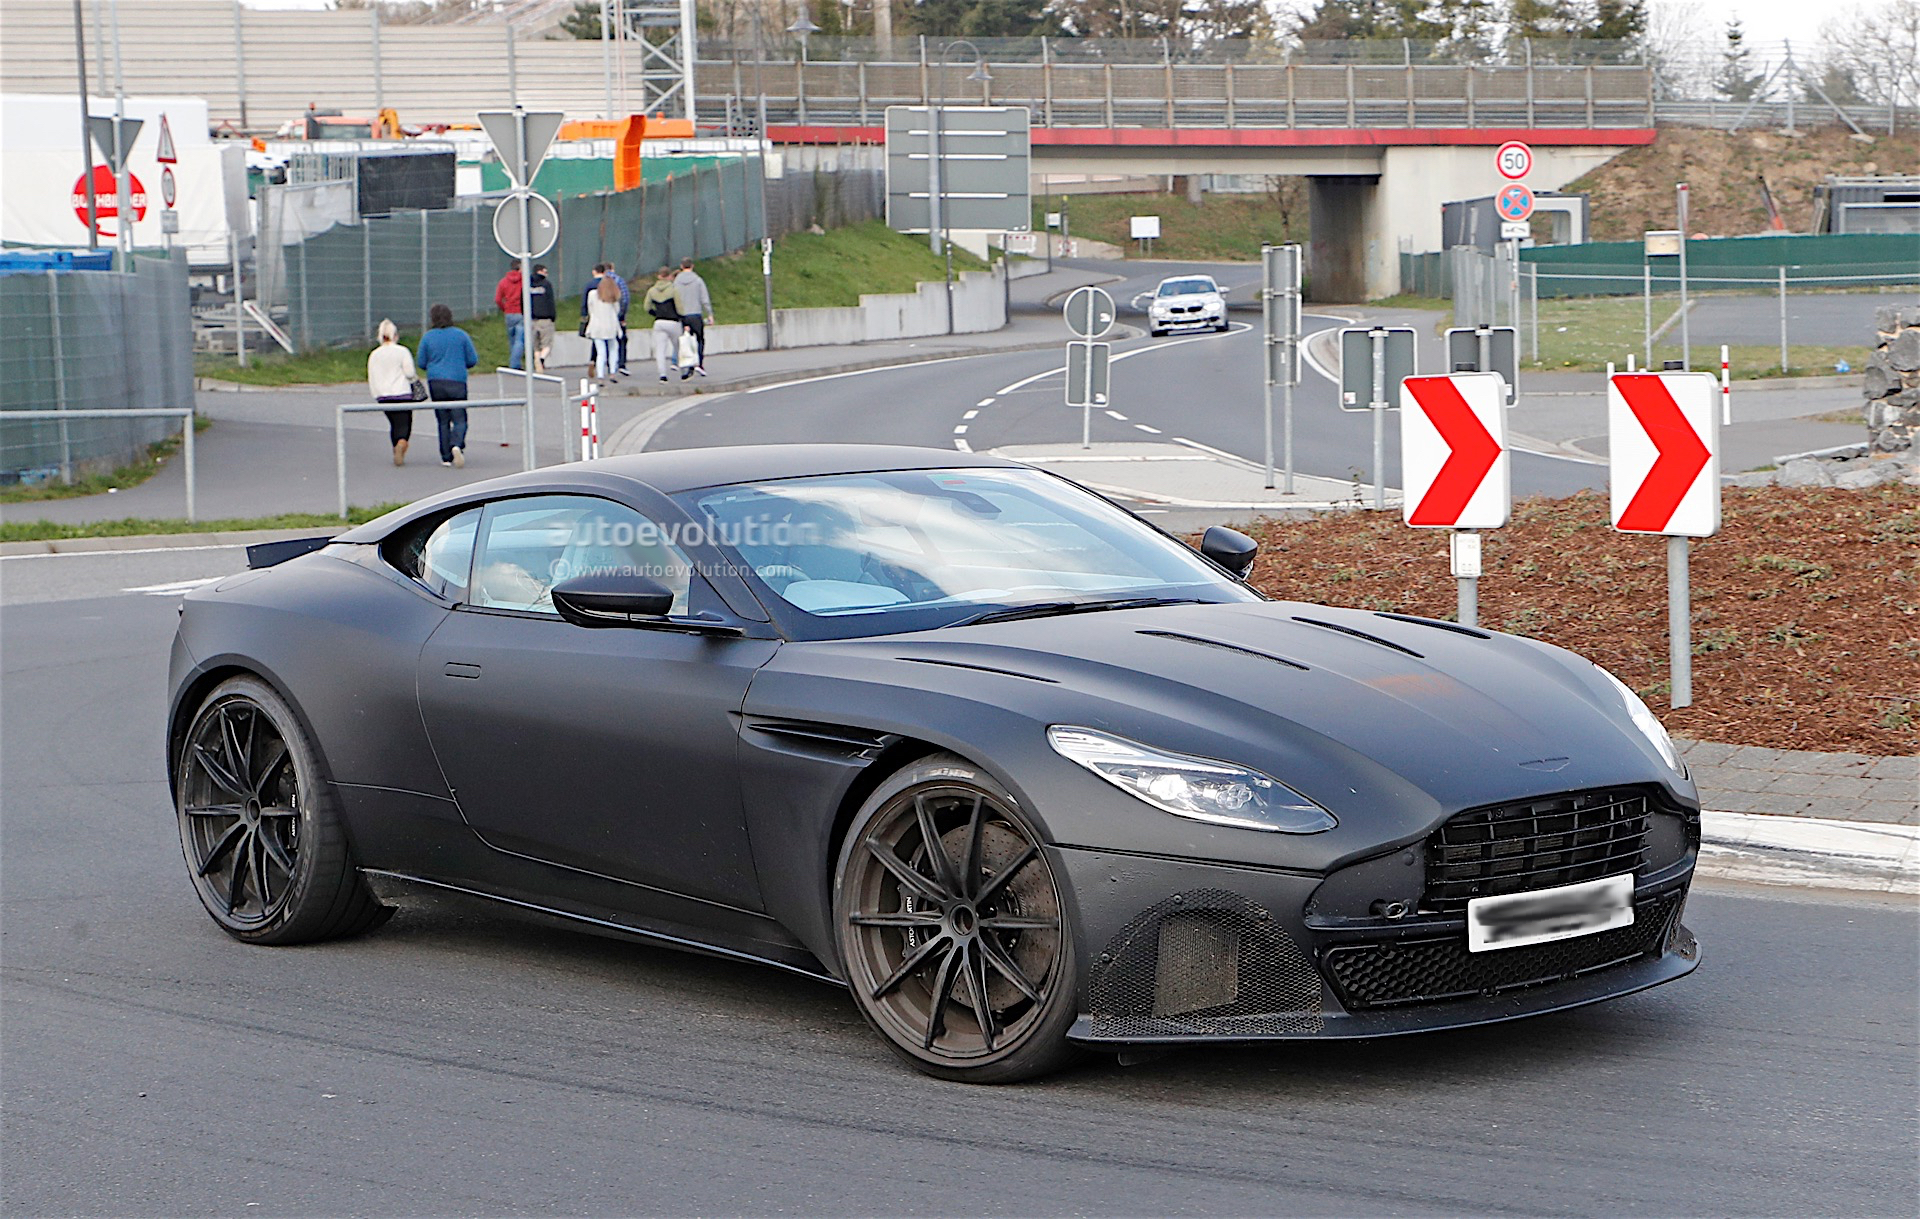 Aston Martin Db11 S Spied Near The Nurburgring It Looks Ready For